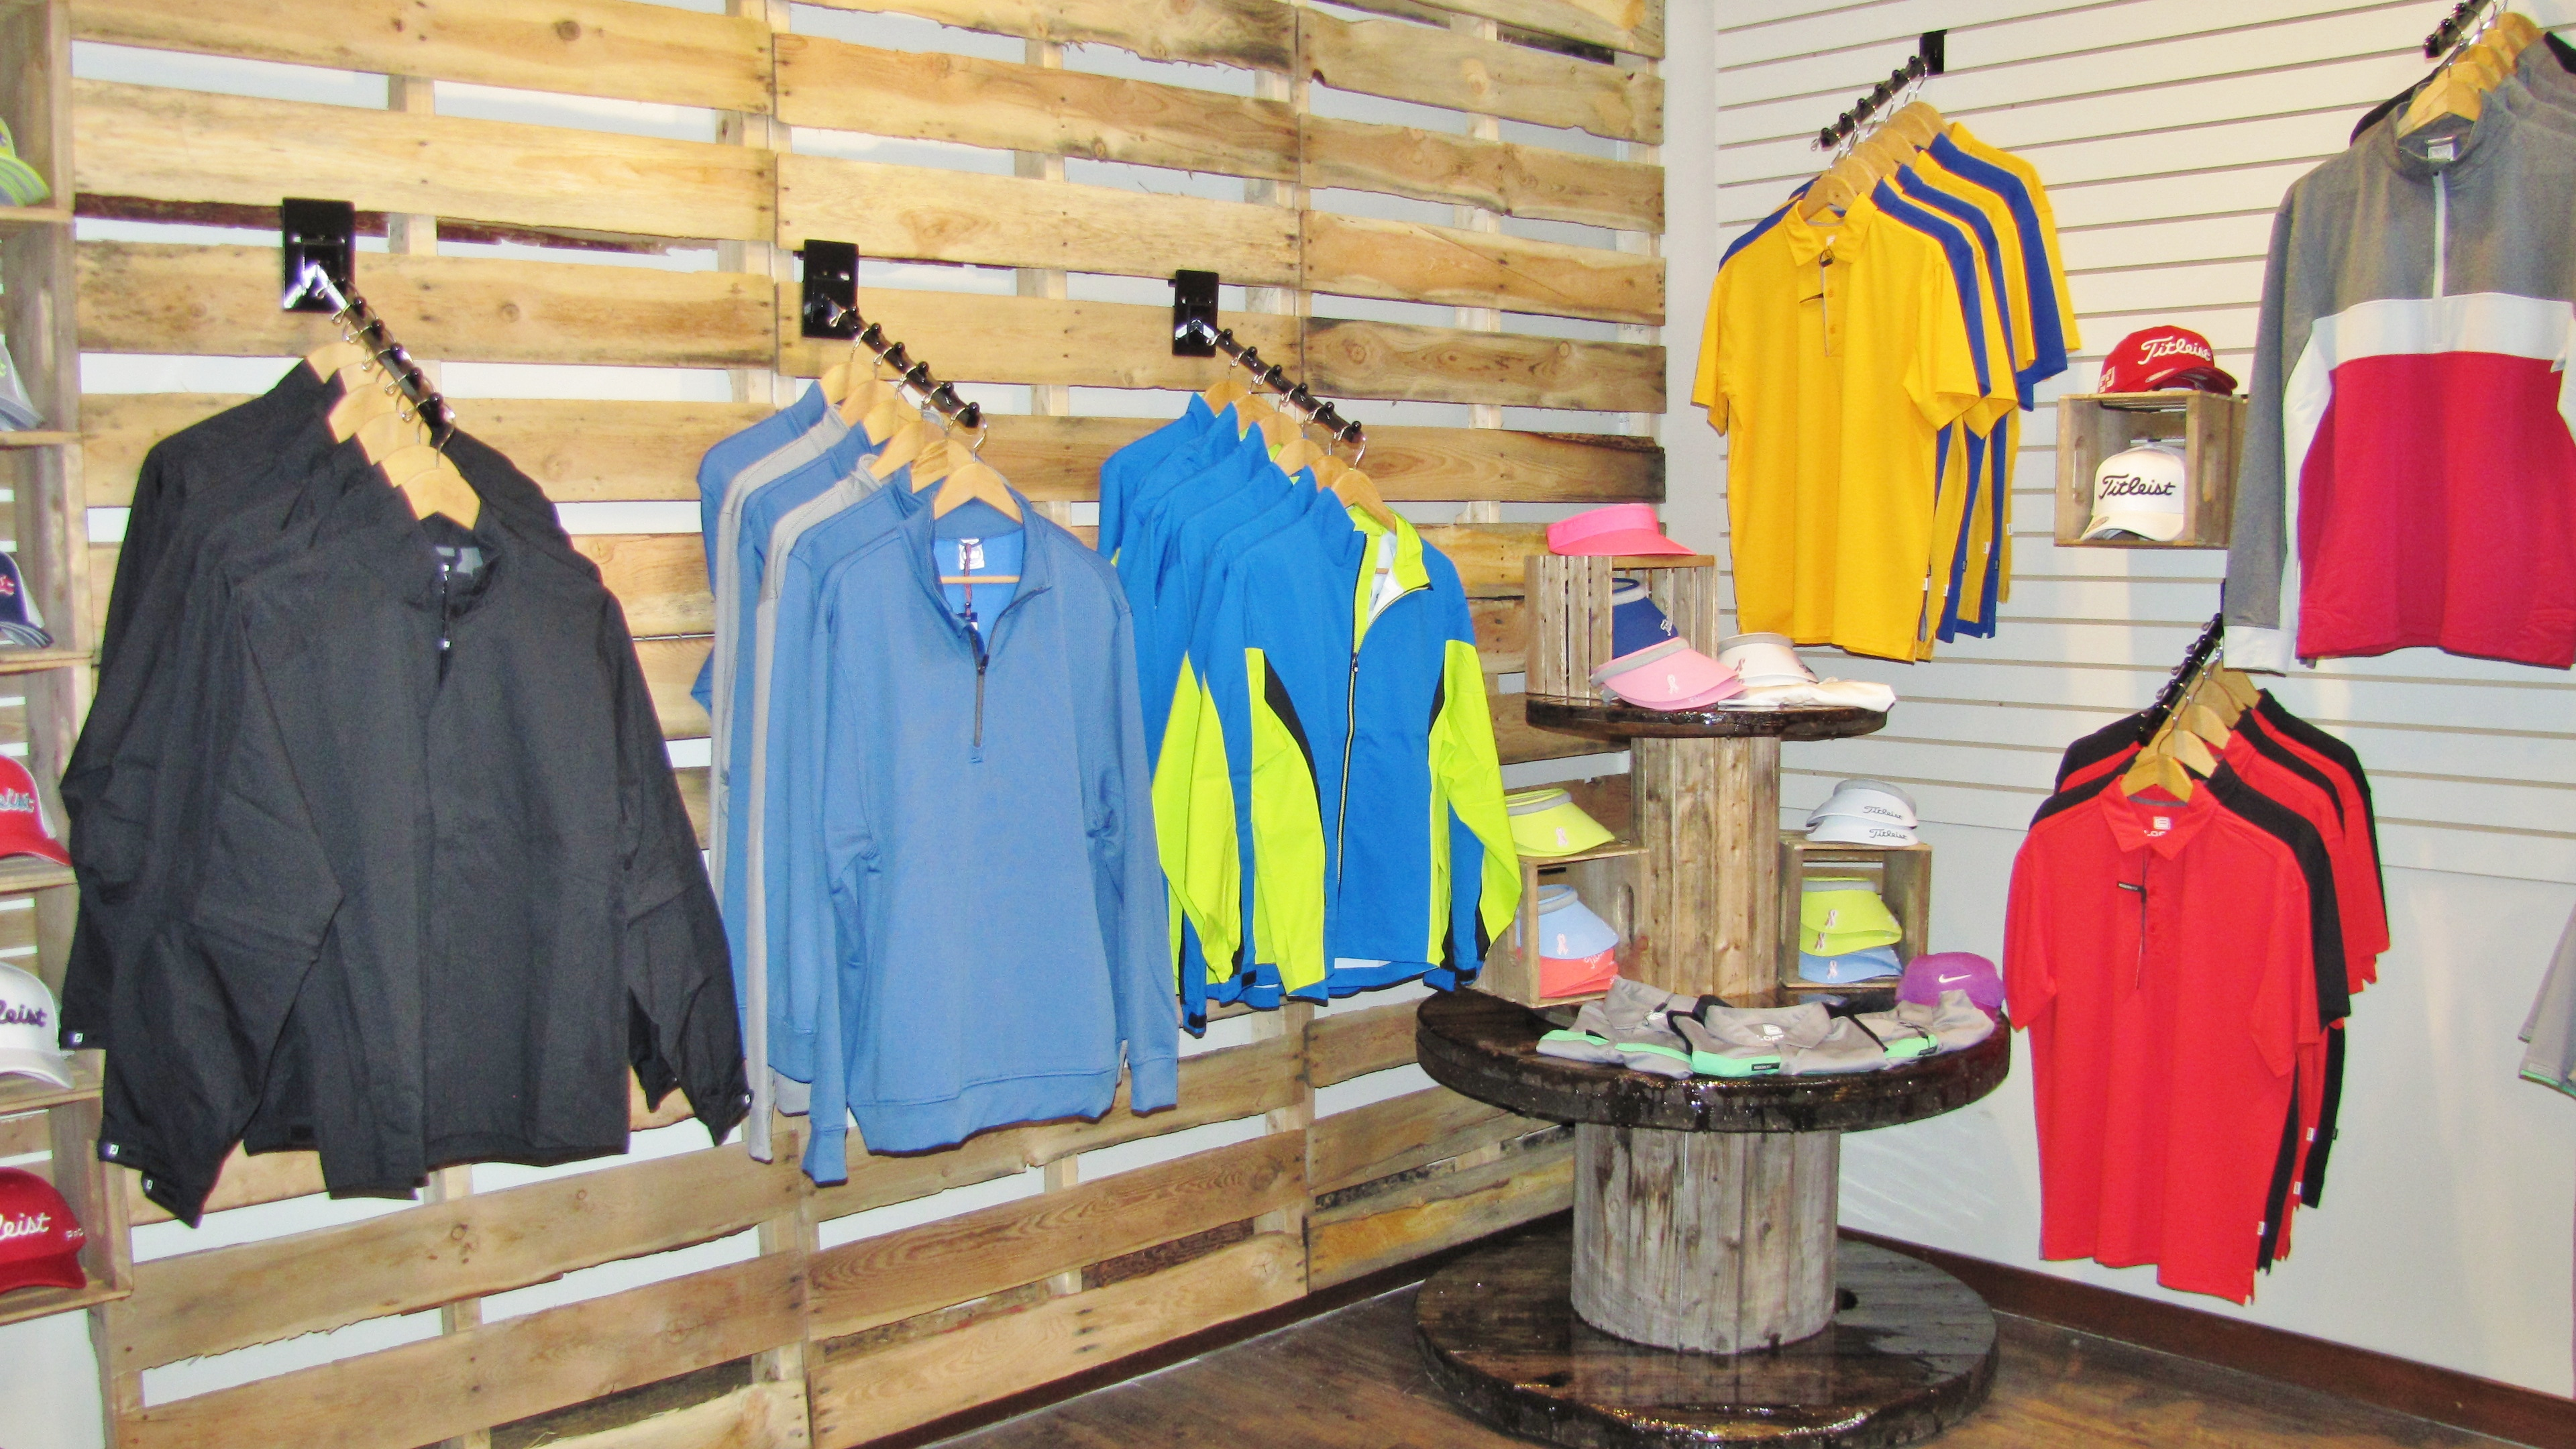 Redwoods shop with clothing on display